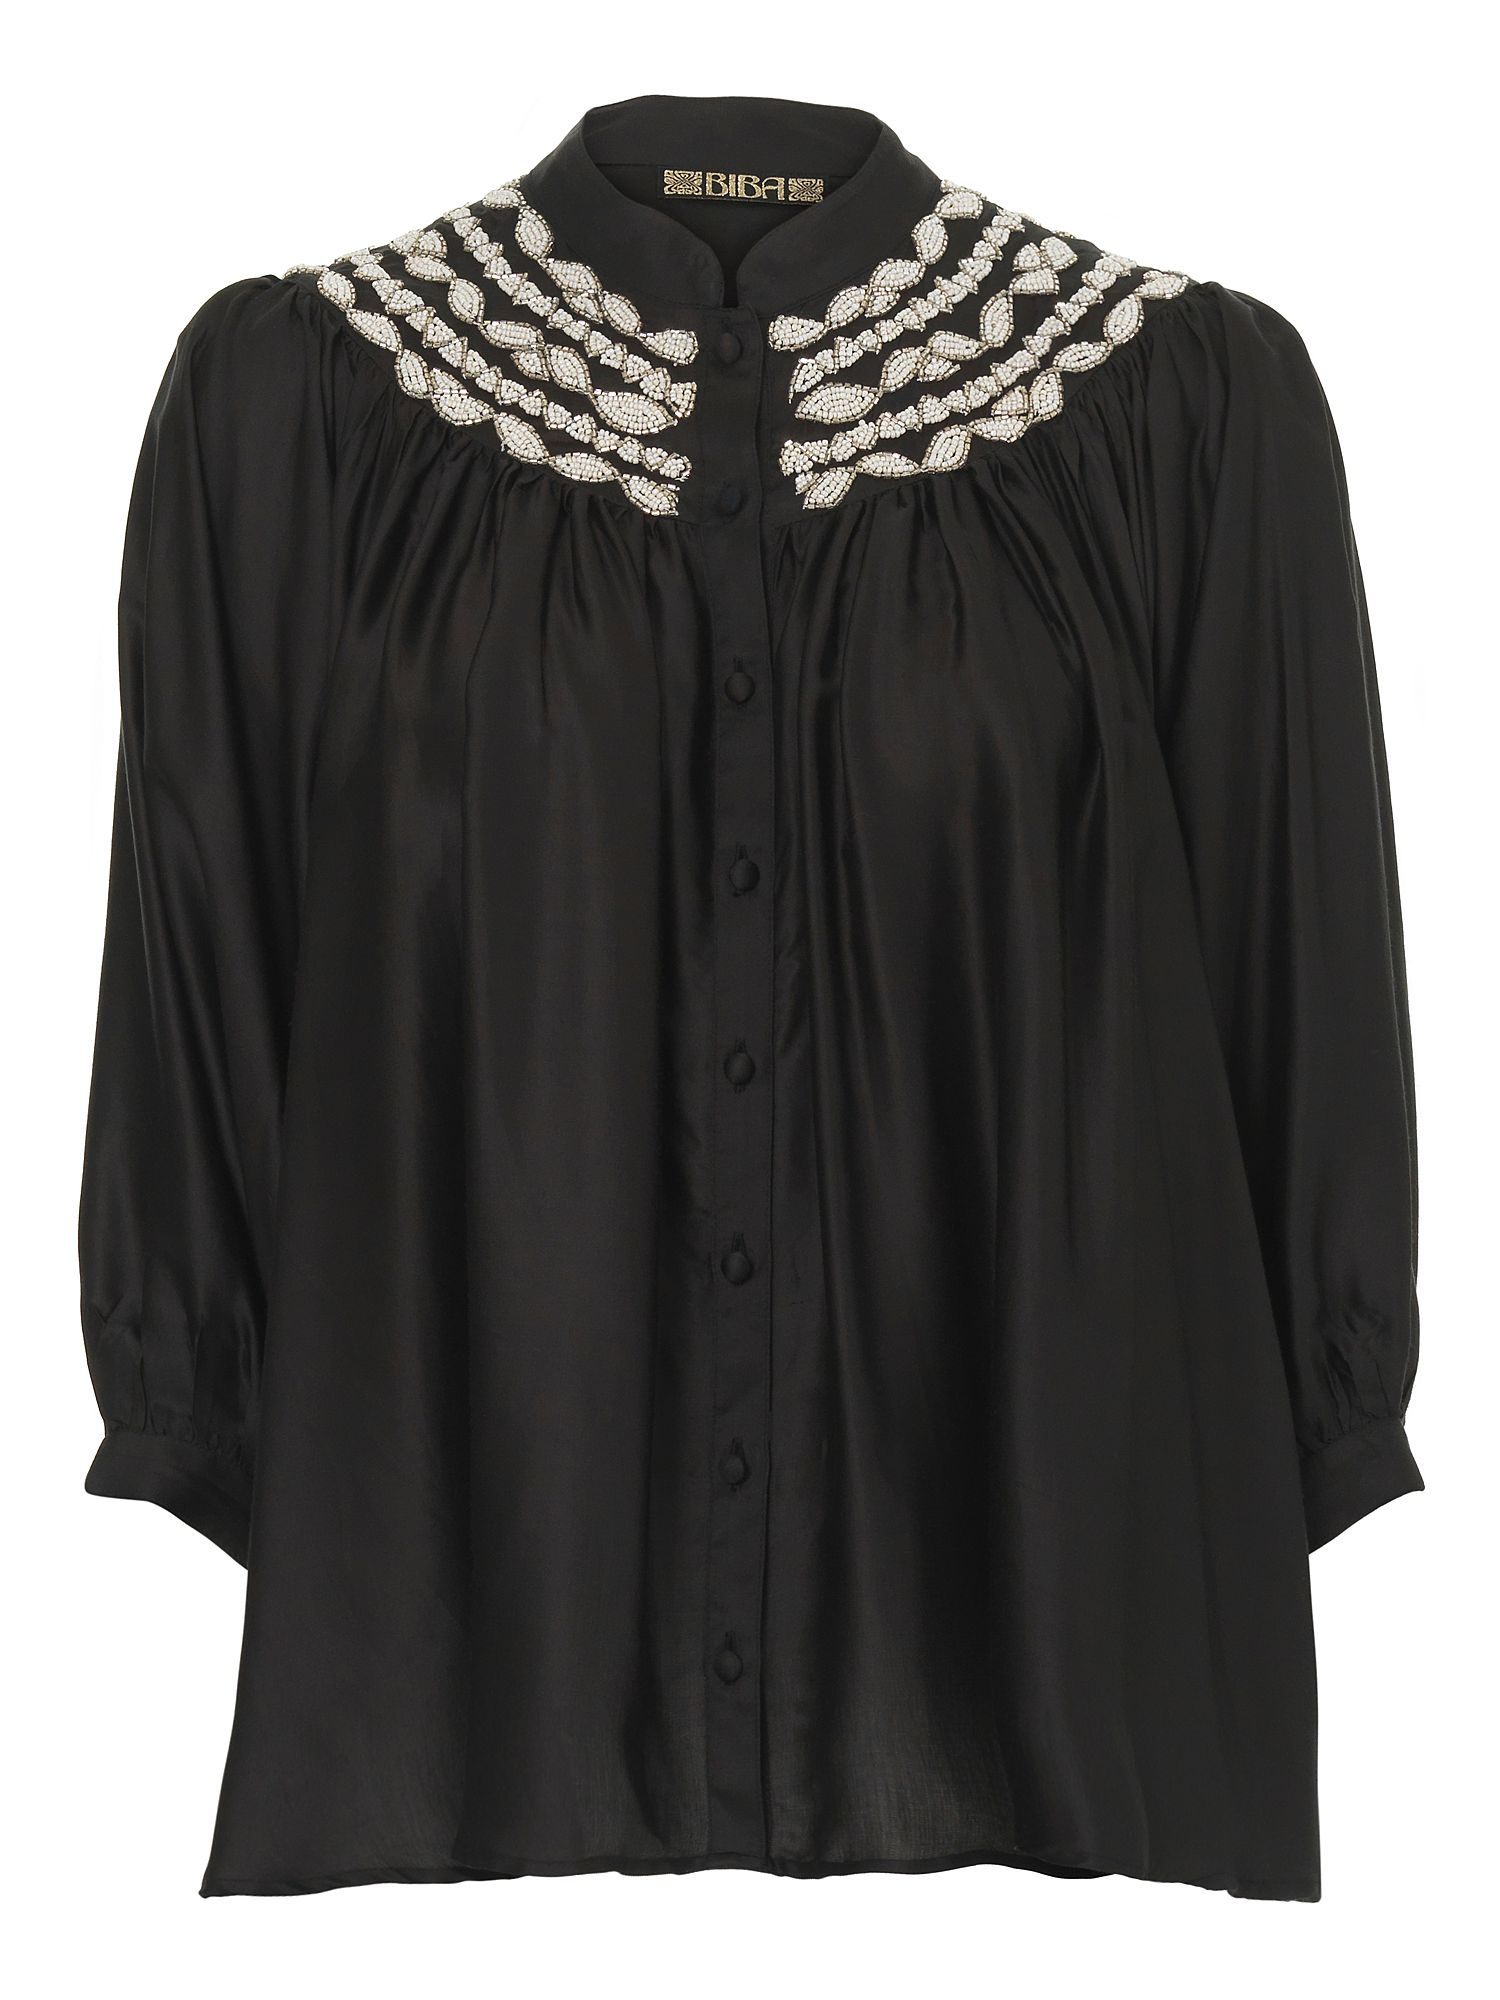 Biba Deco beaded batwing blouse Black product image